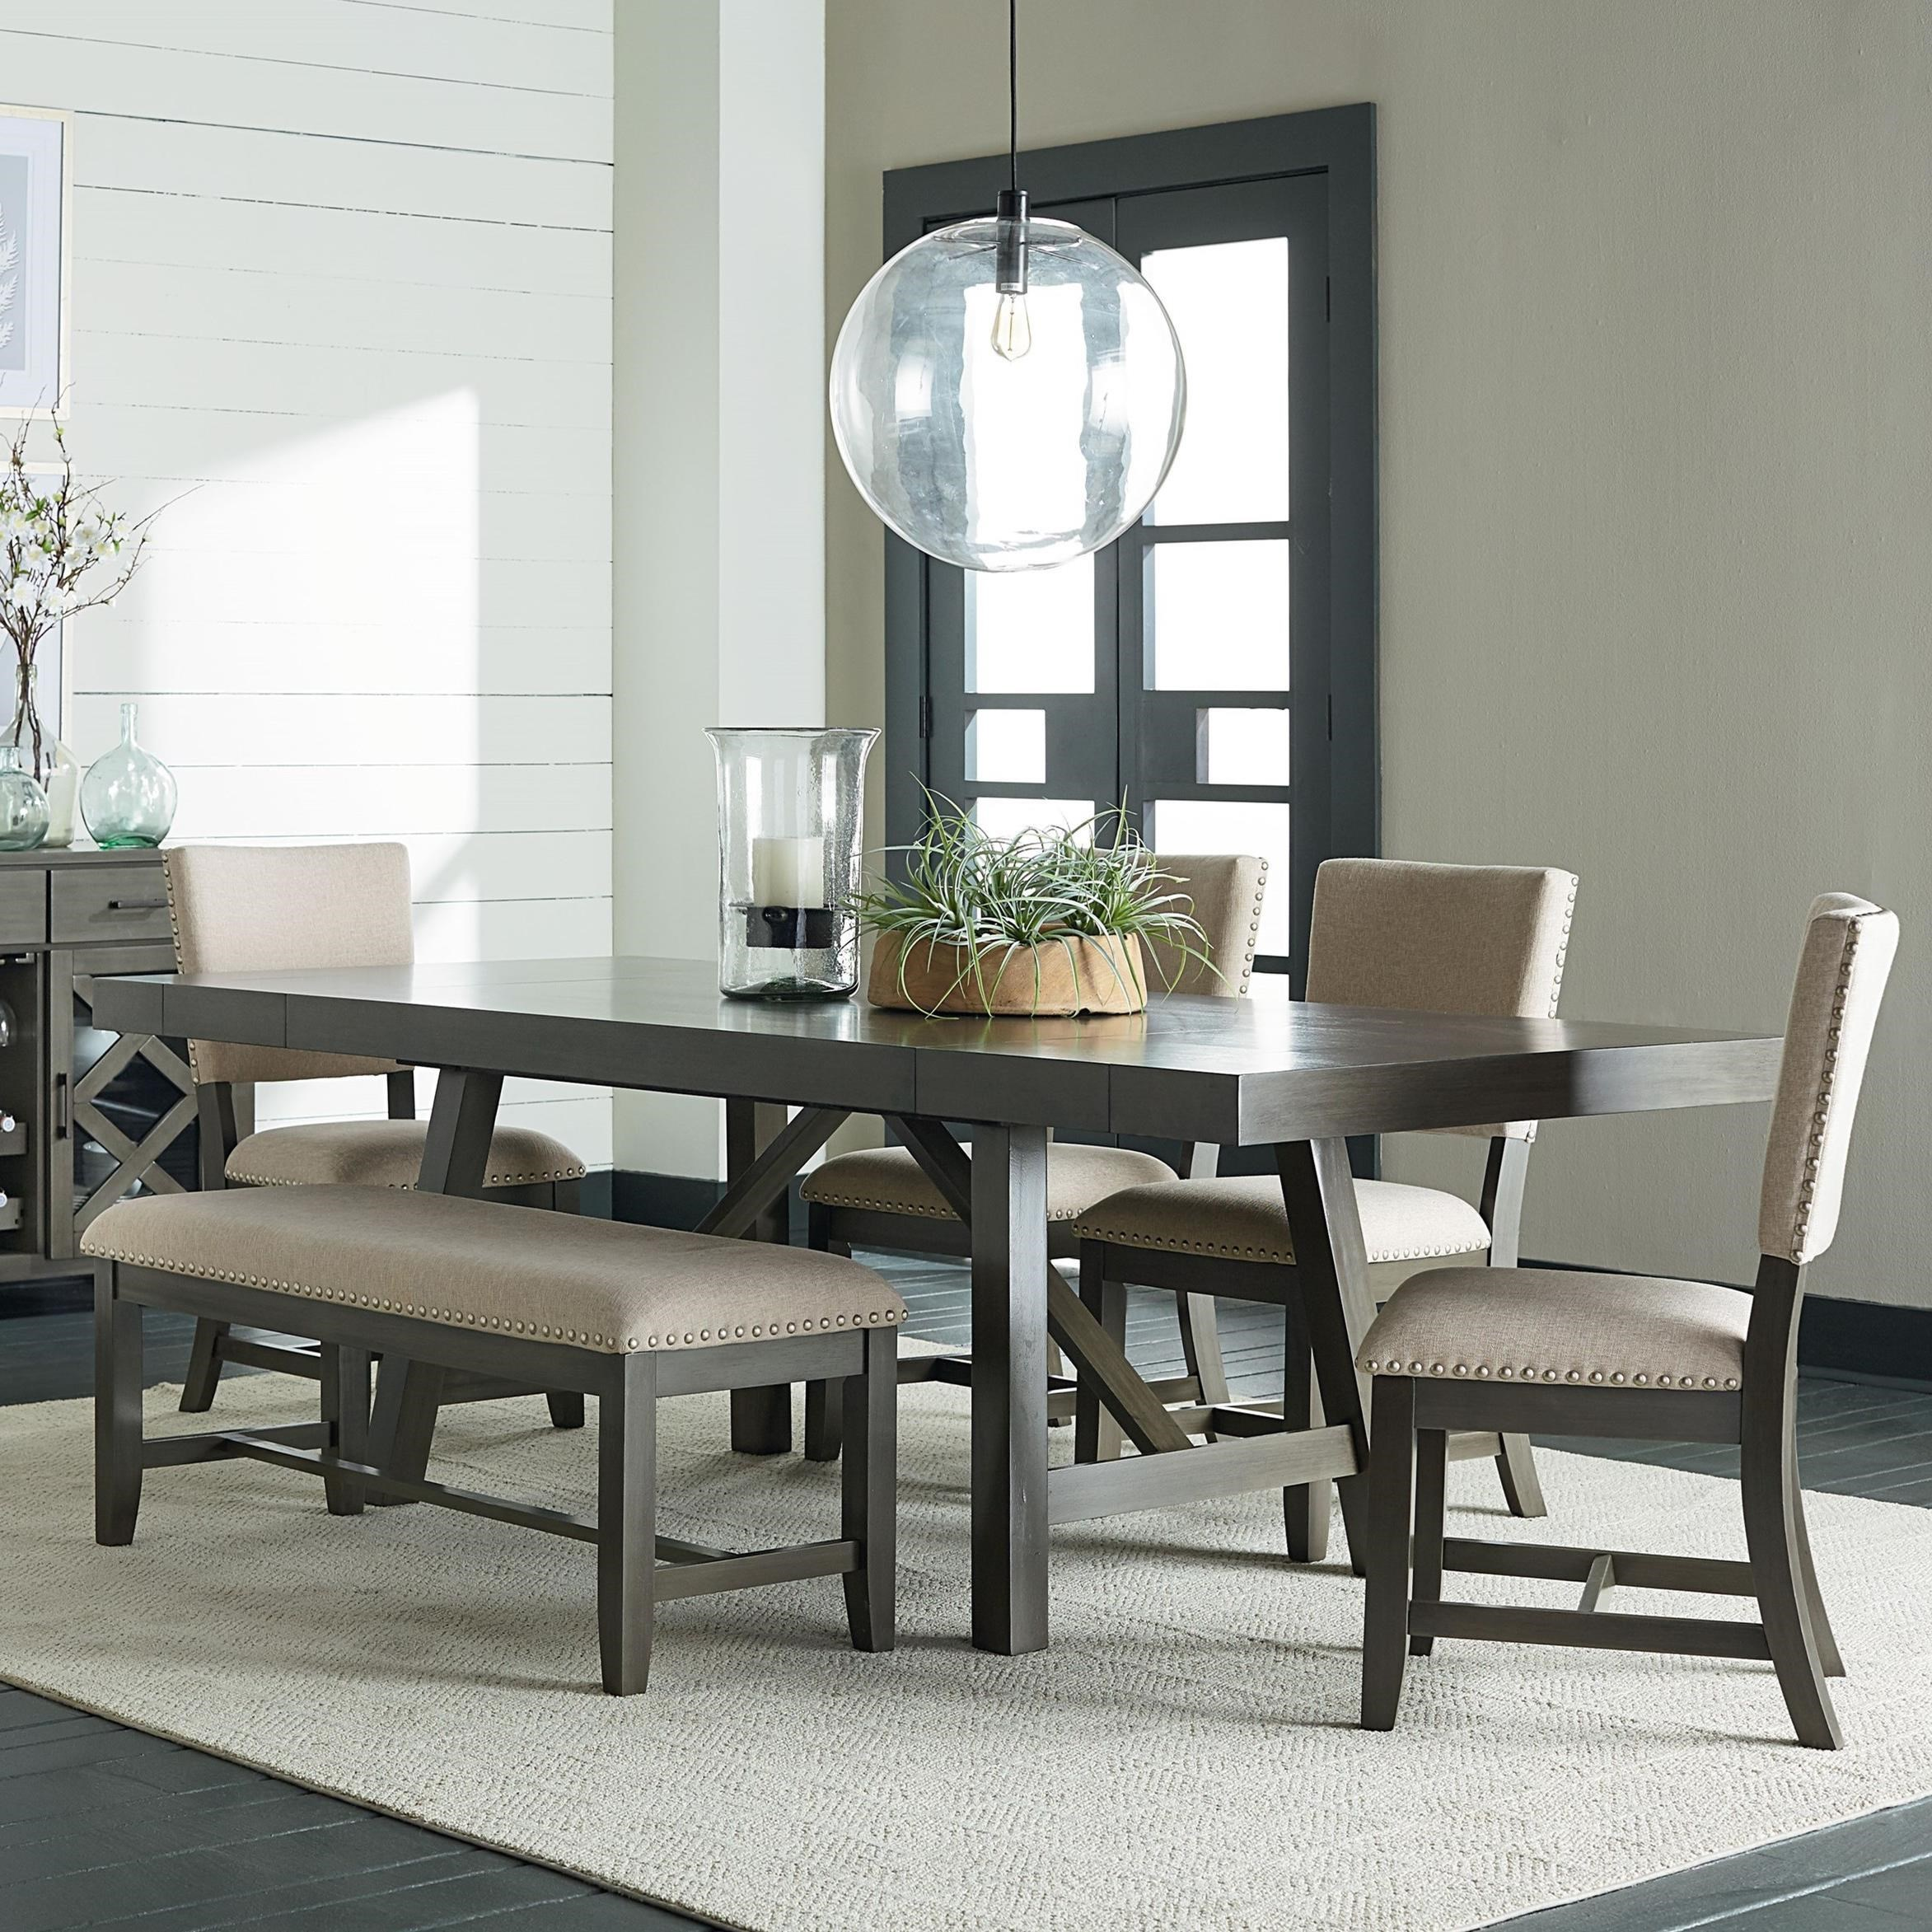 Exceptionnel Standard Furniture Omaha Grey 6 Piece Trestle Table Dining Set With Dining  Bench